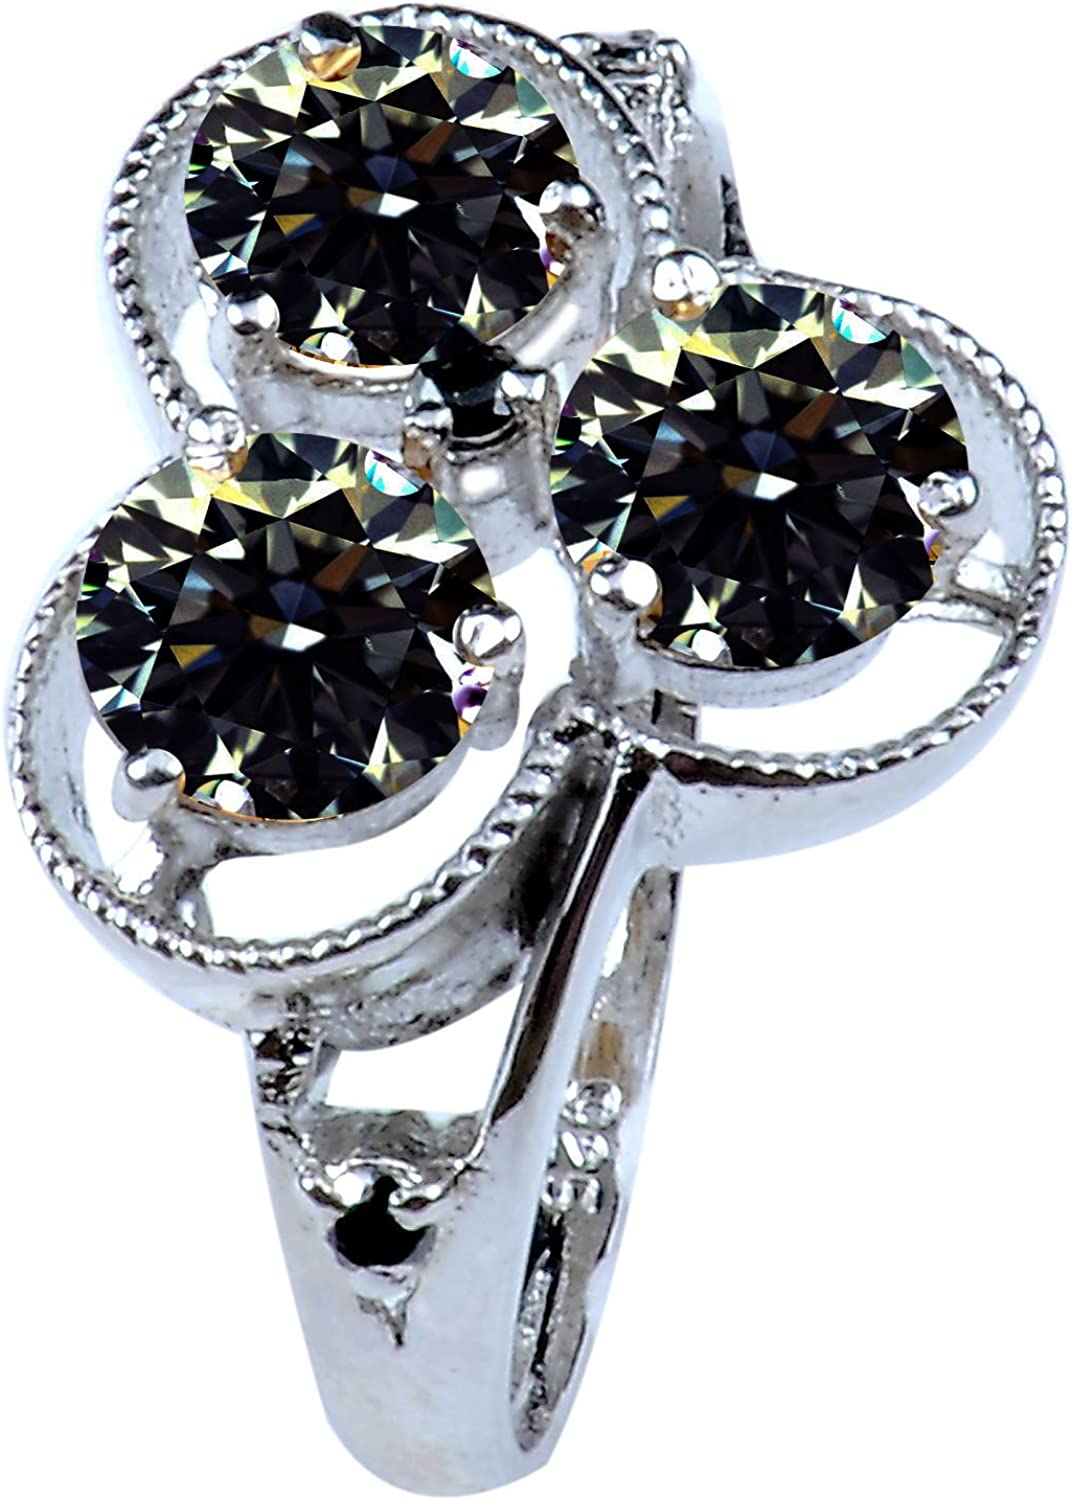 RINGJEWEL 2.36ct sI1 Round Real Moissanite Solitaire Engagement /& Wedding Ring Brown Size 7